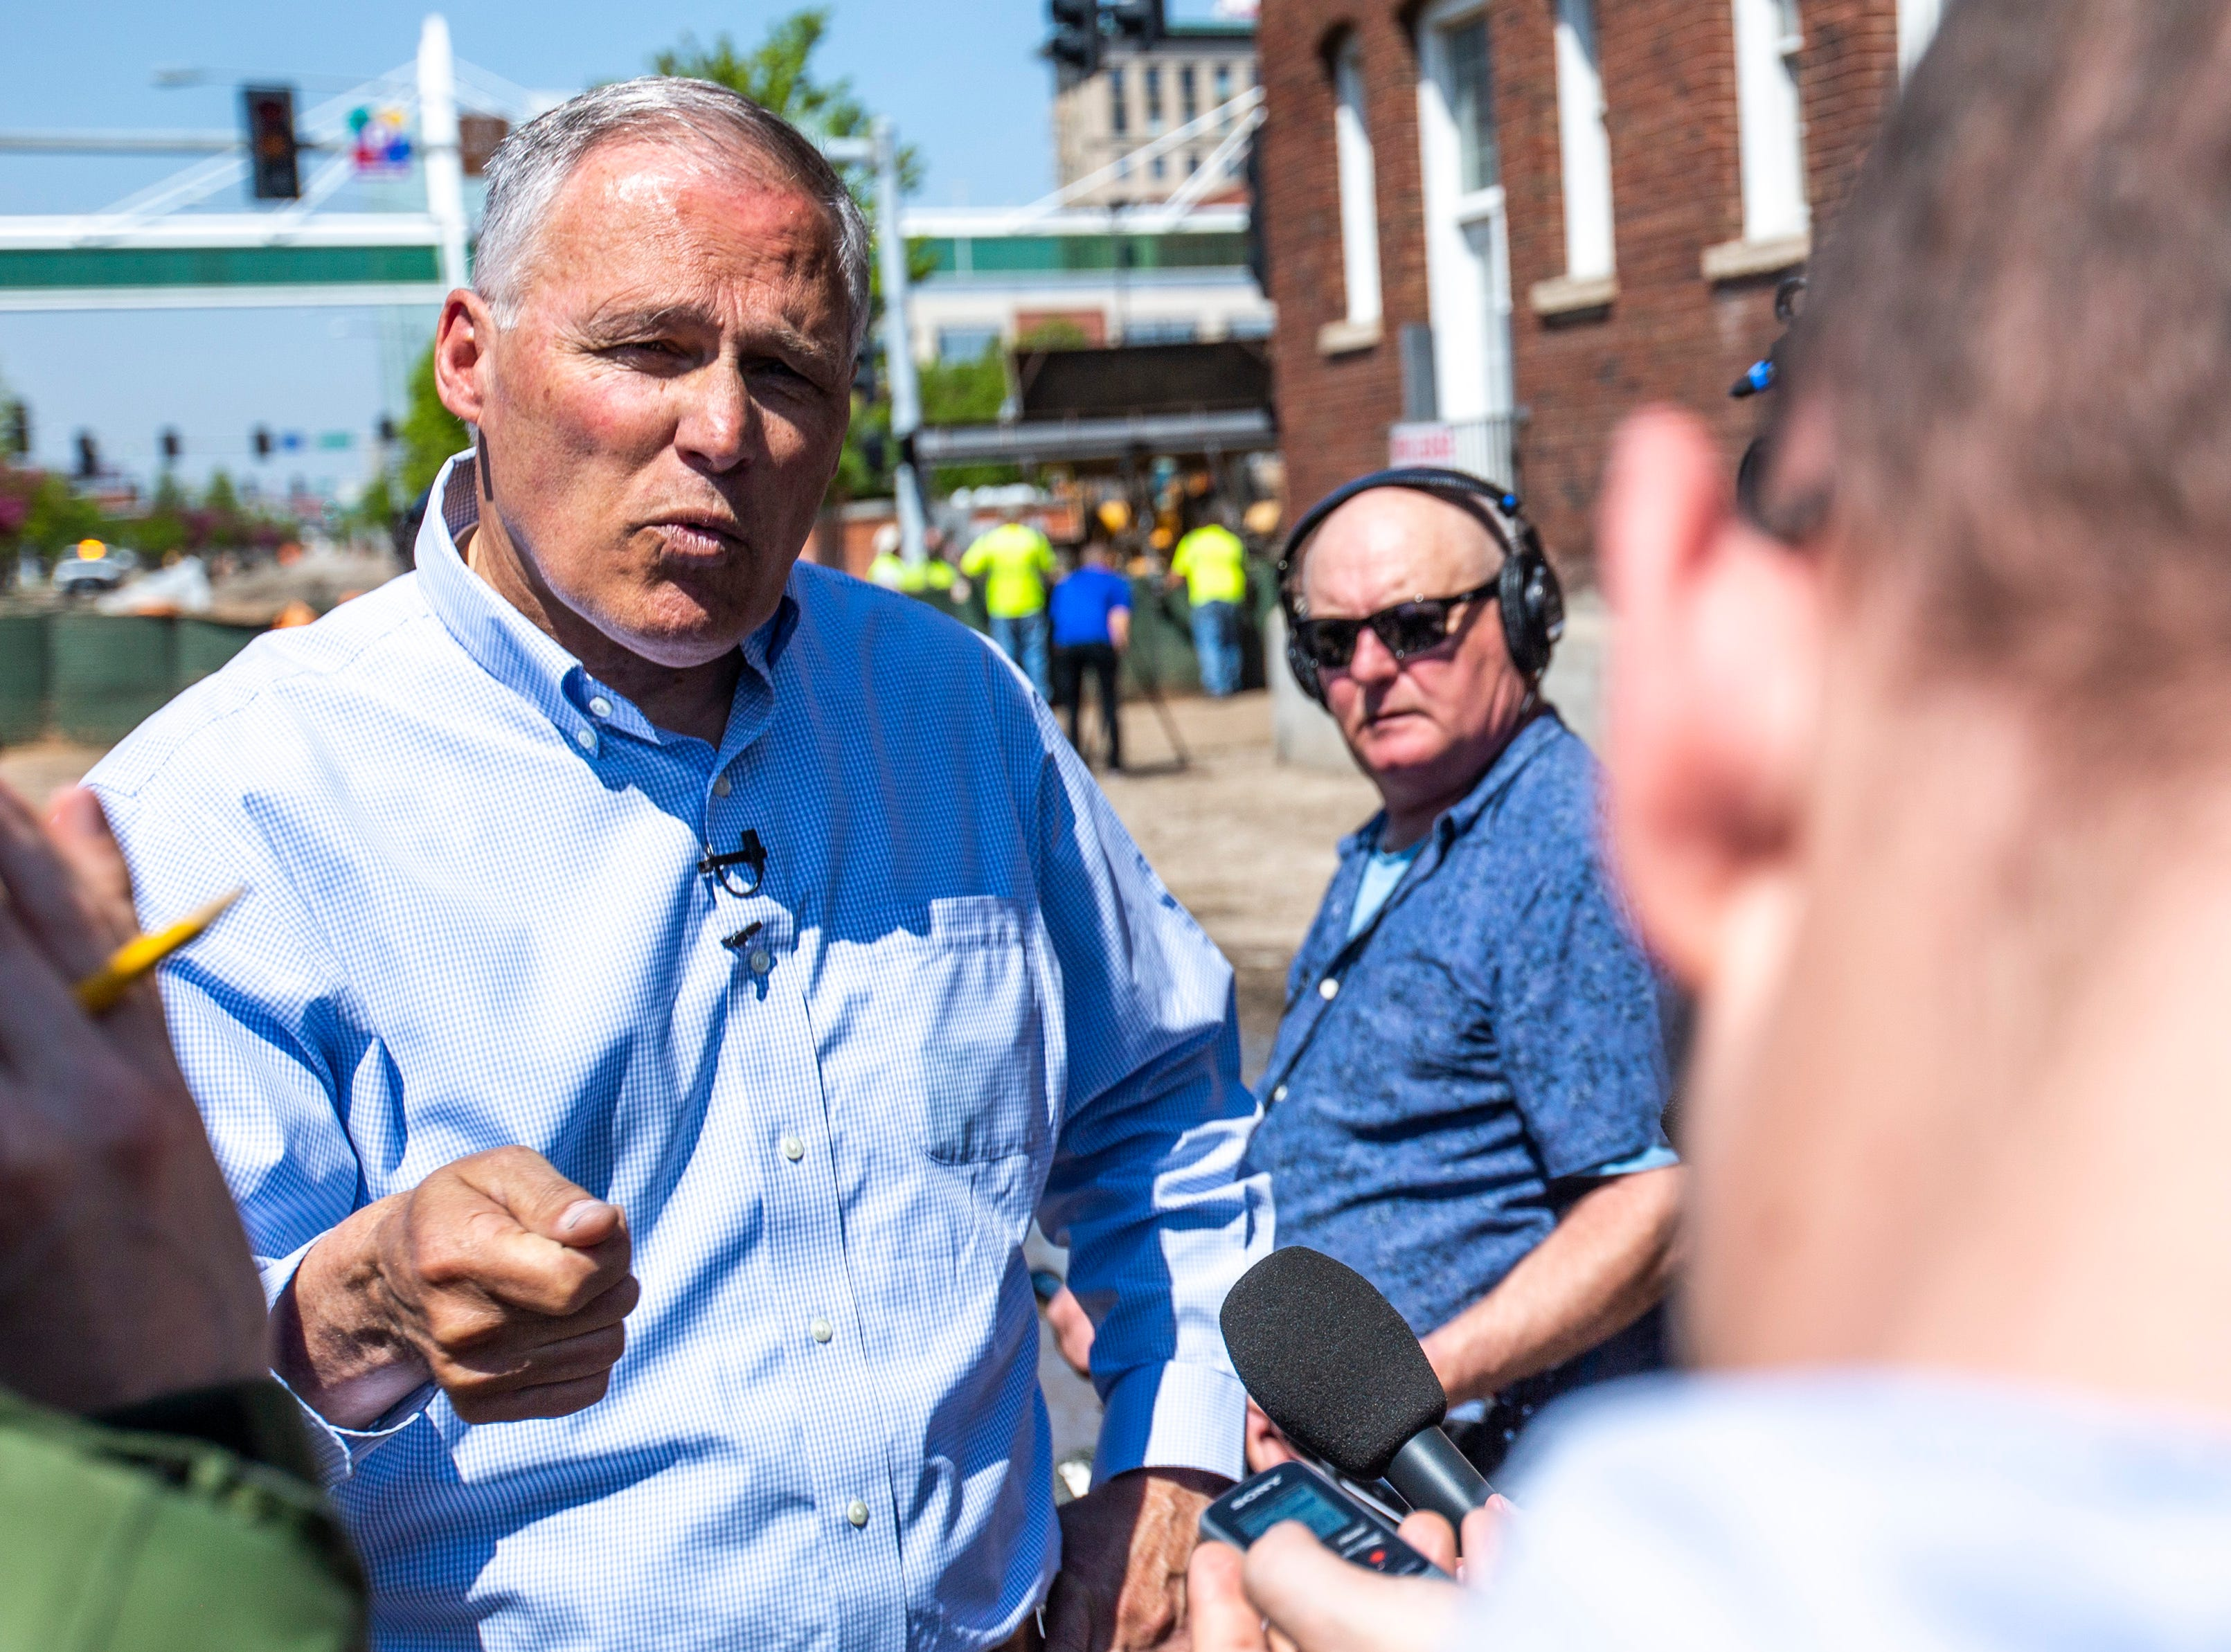 Washington Gov. Jay Inslee talks with reporters after touring areas impacted by floodwaters, Wednesday, May 15, 2019, in downtown Davenport, Iowa.